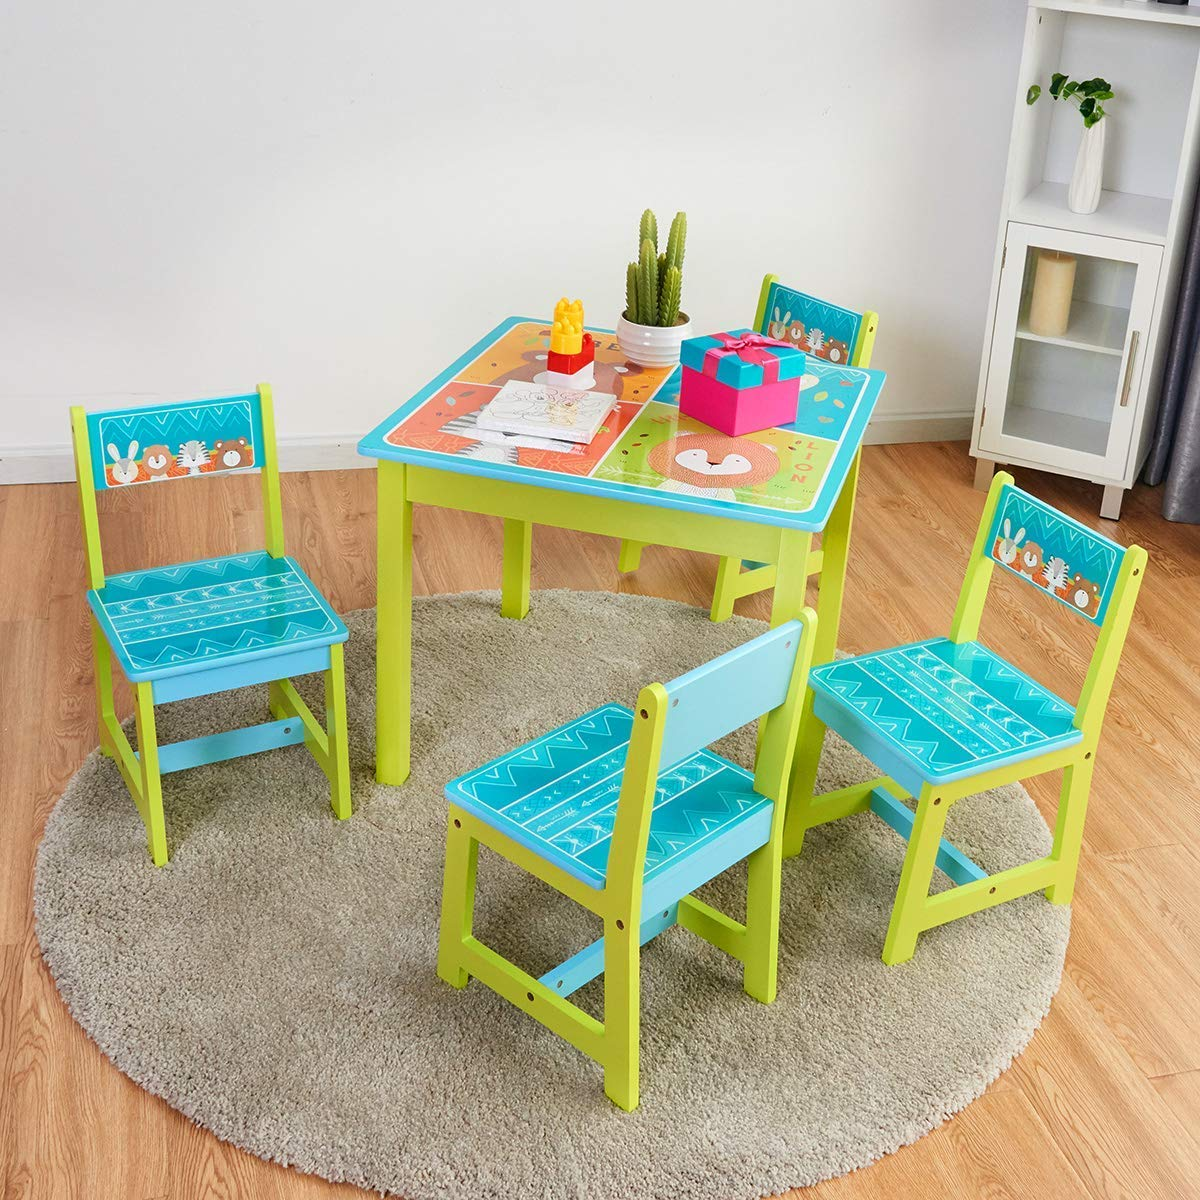 BABY JOY Kids Table and 4 Chairs Set, Wooden MDF Desk for Studying Playing Dining Indoors & Outdoors Activity, Toddler Baby Gift Desk Furniture Cartoon Pattern (Table and 4 Chairs) by BABY JOY (Image #1)